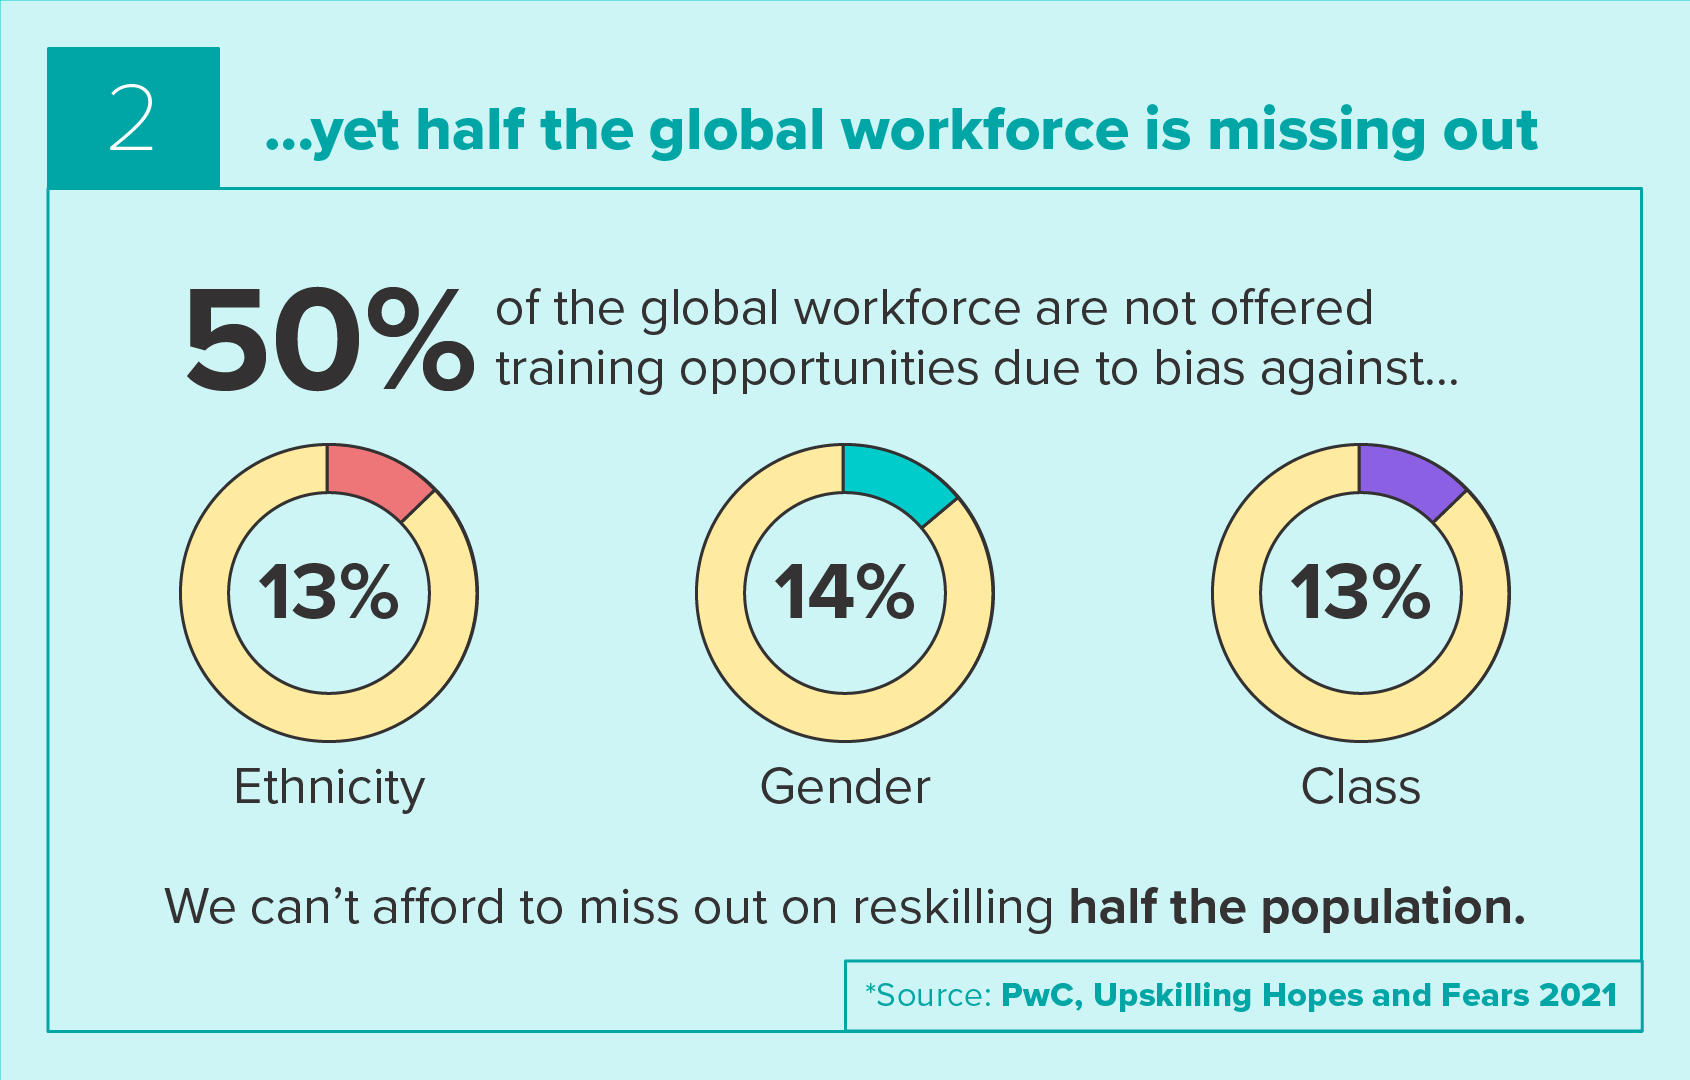 Half of the global workforce is missing out